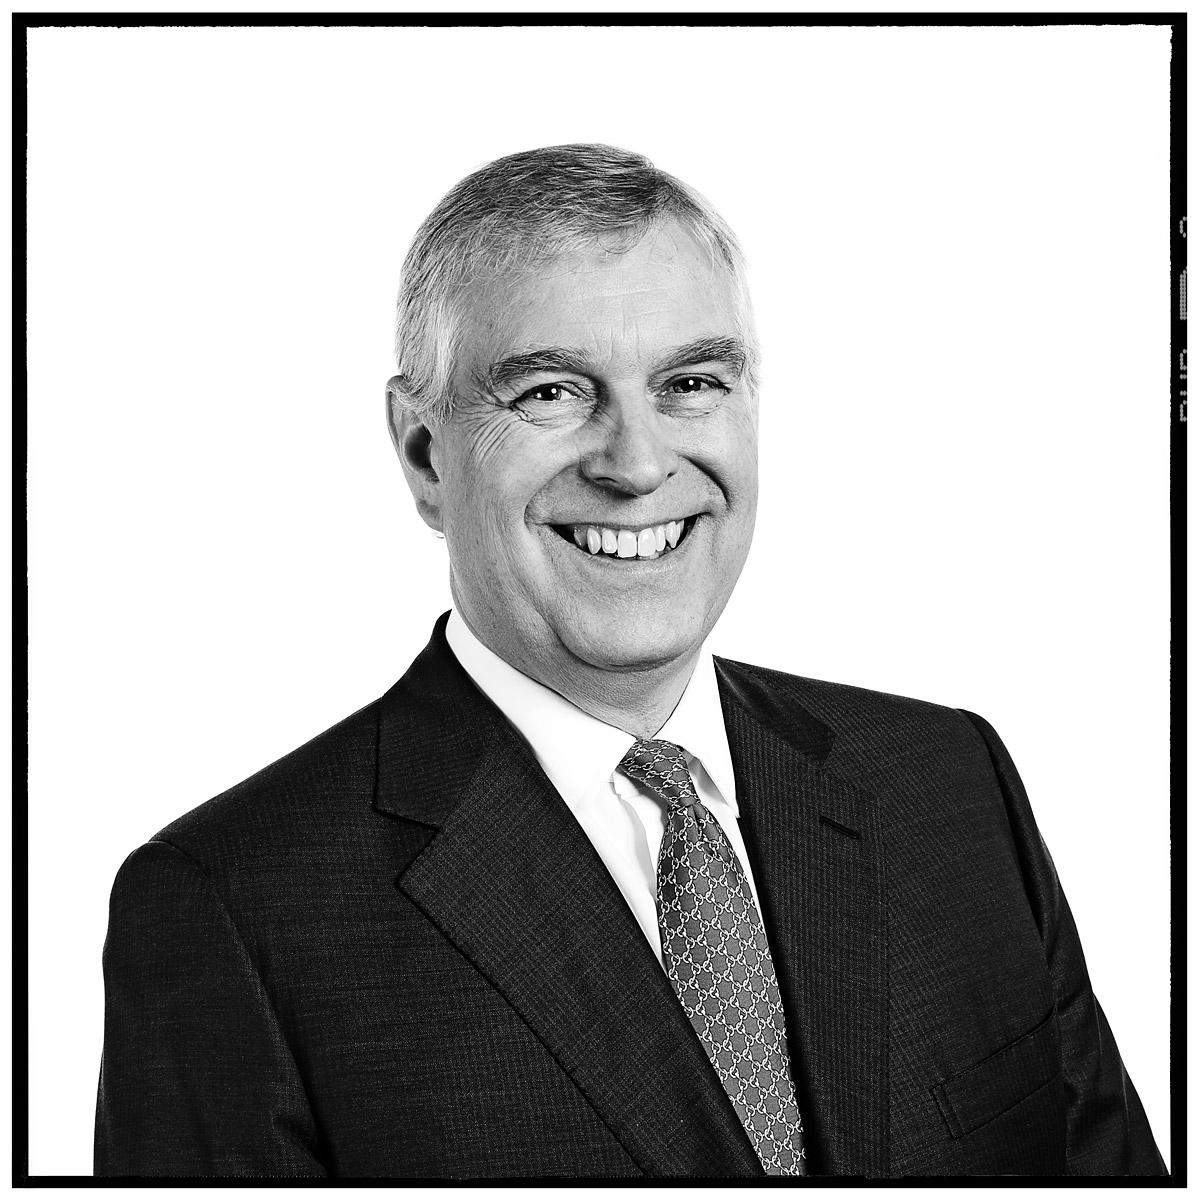 Portrait of HRH Prince Andrew by Contemporary London photographer Julian Hanford